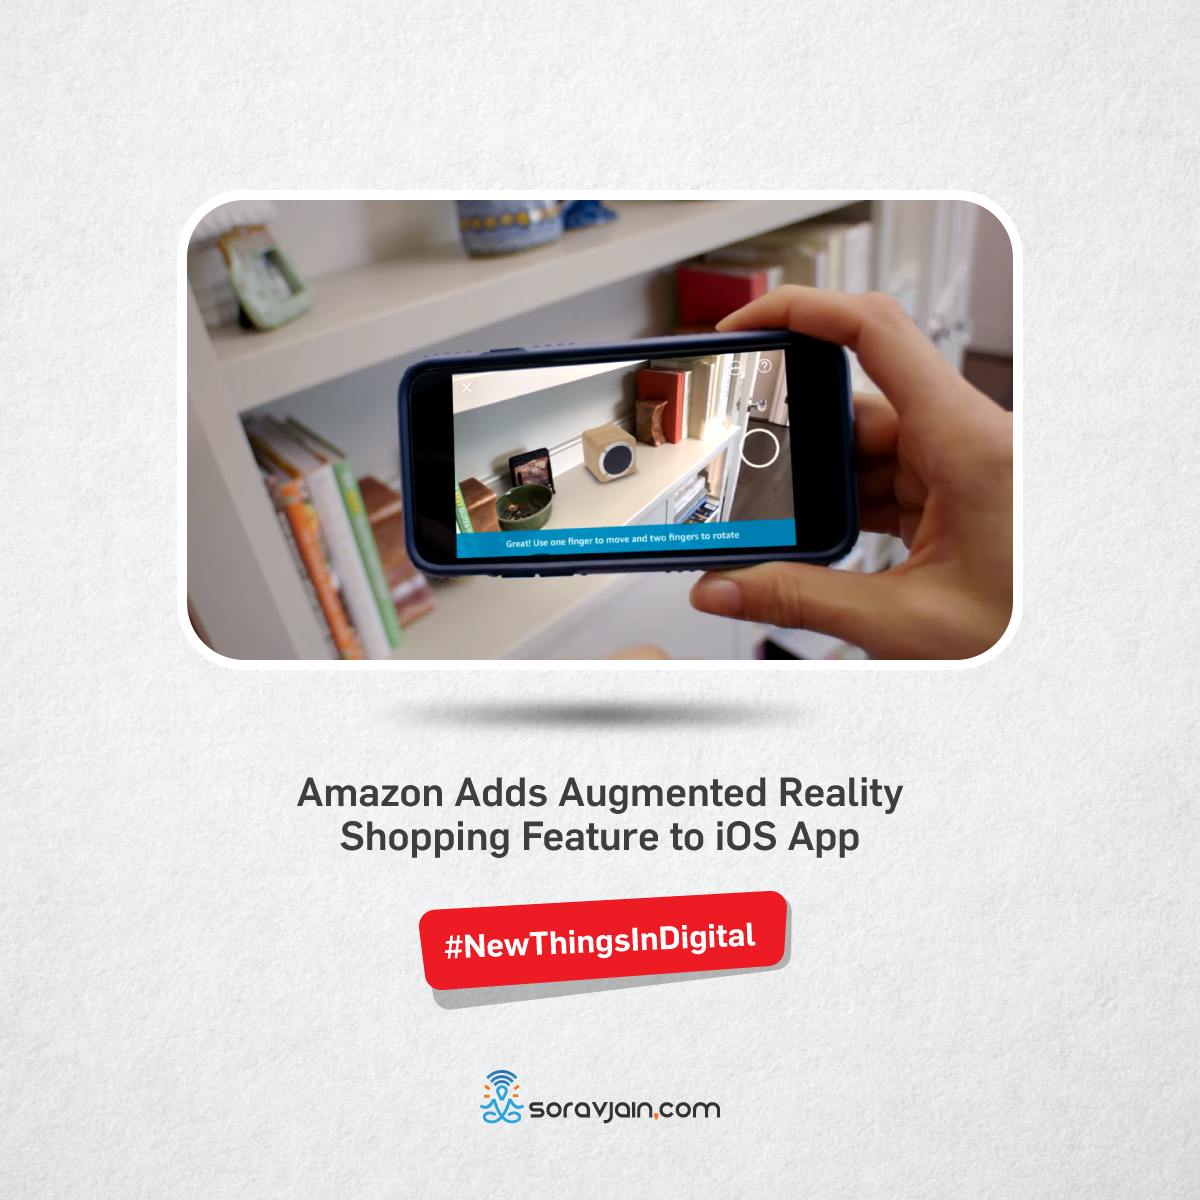 Amazon Adds Augmented Reality Shopping Feature to iOS App